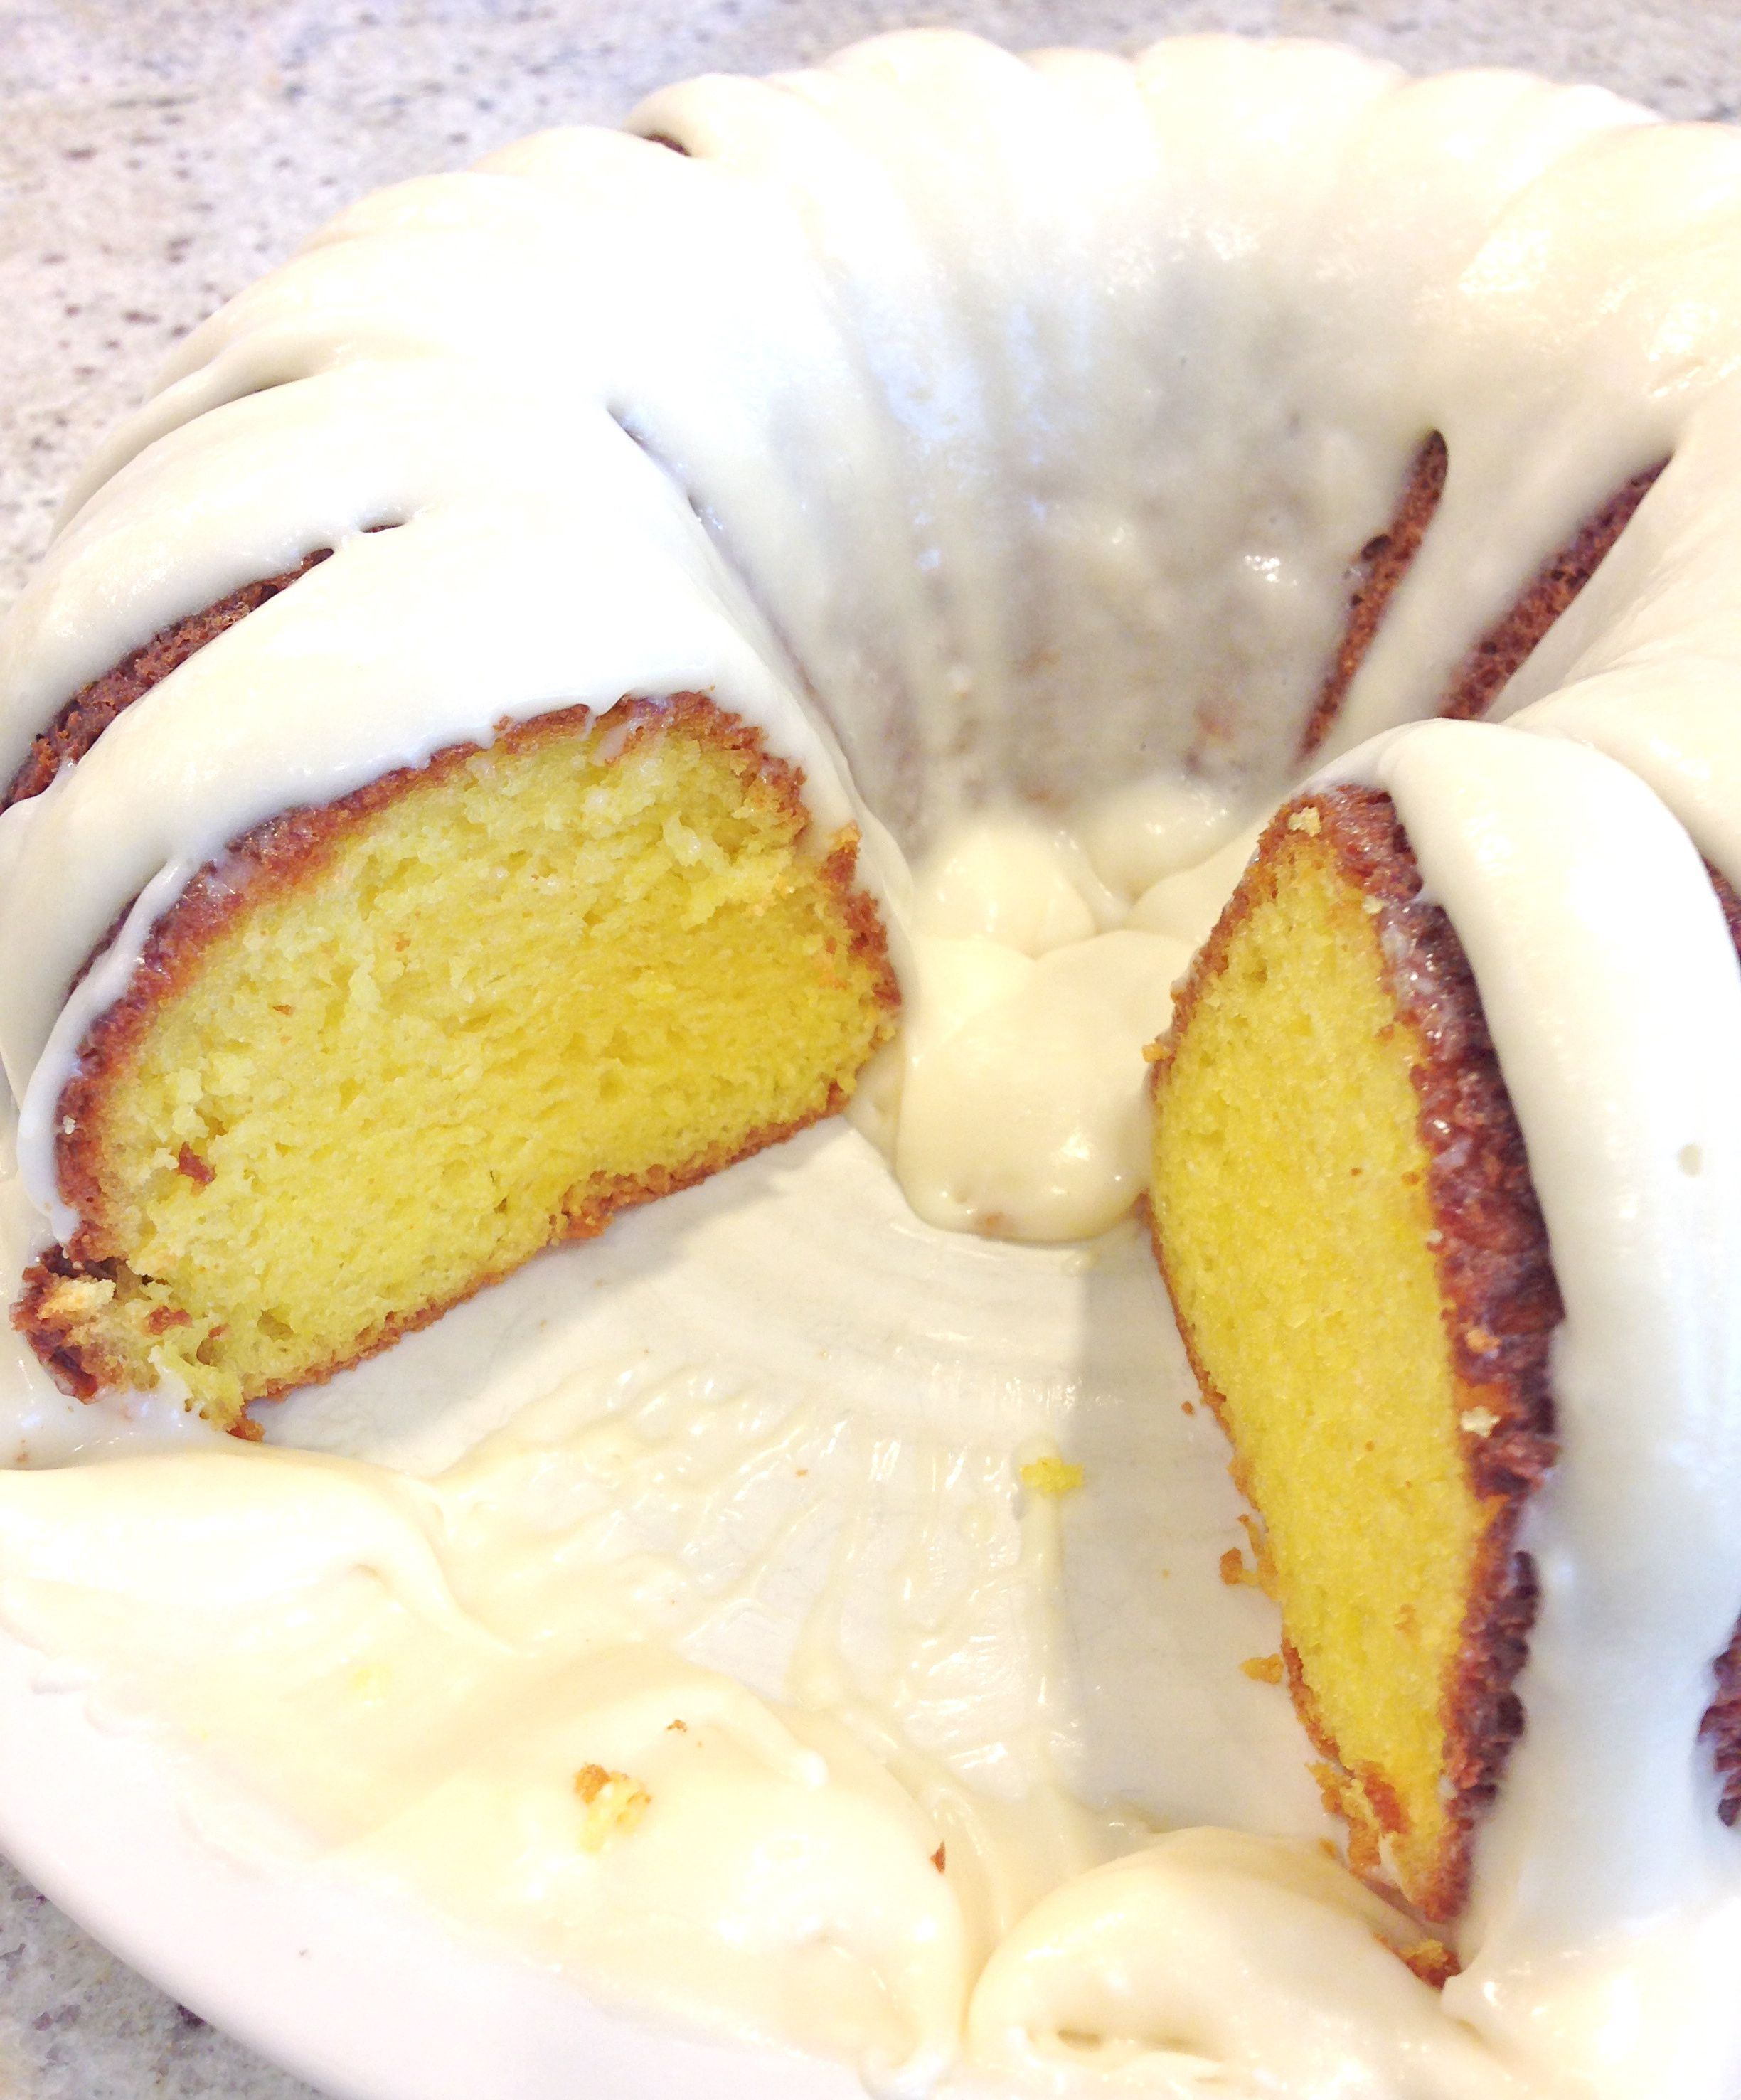 Glaze frosting recipe for pound cake